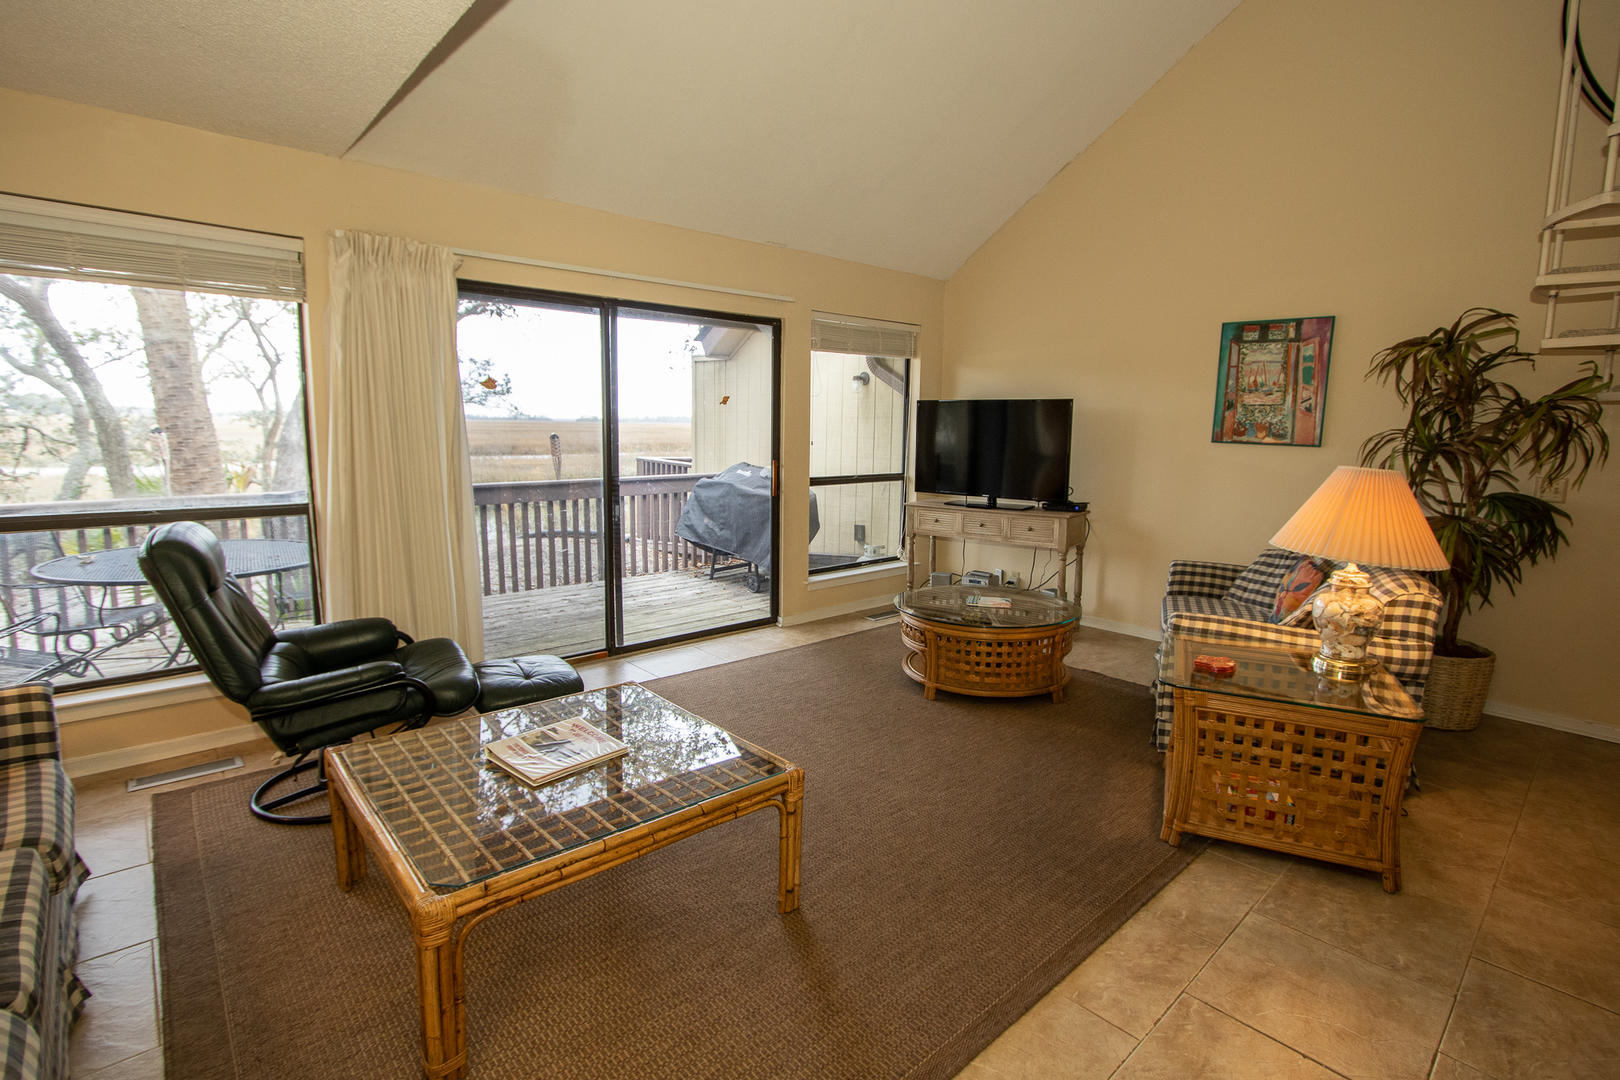 Living, TV w/ DVD player, access to balcony